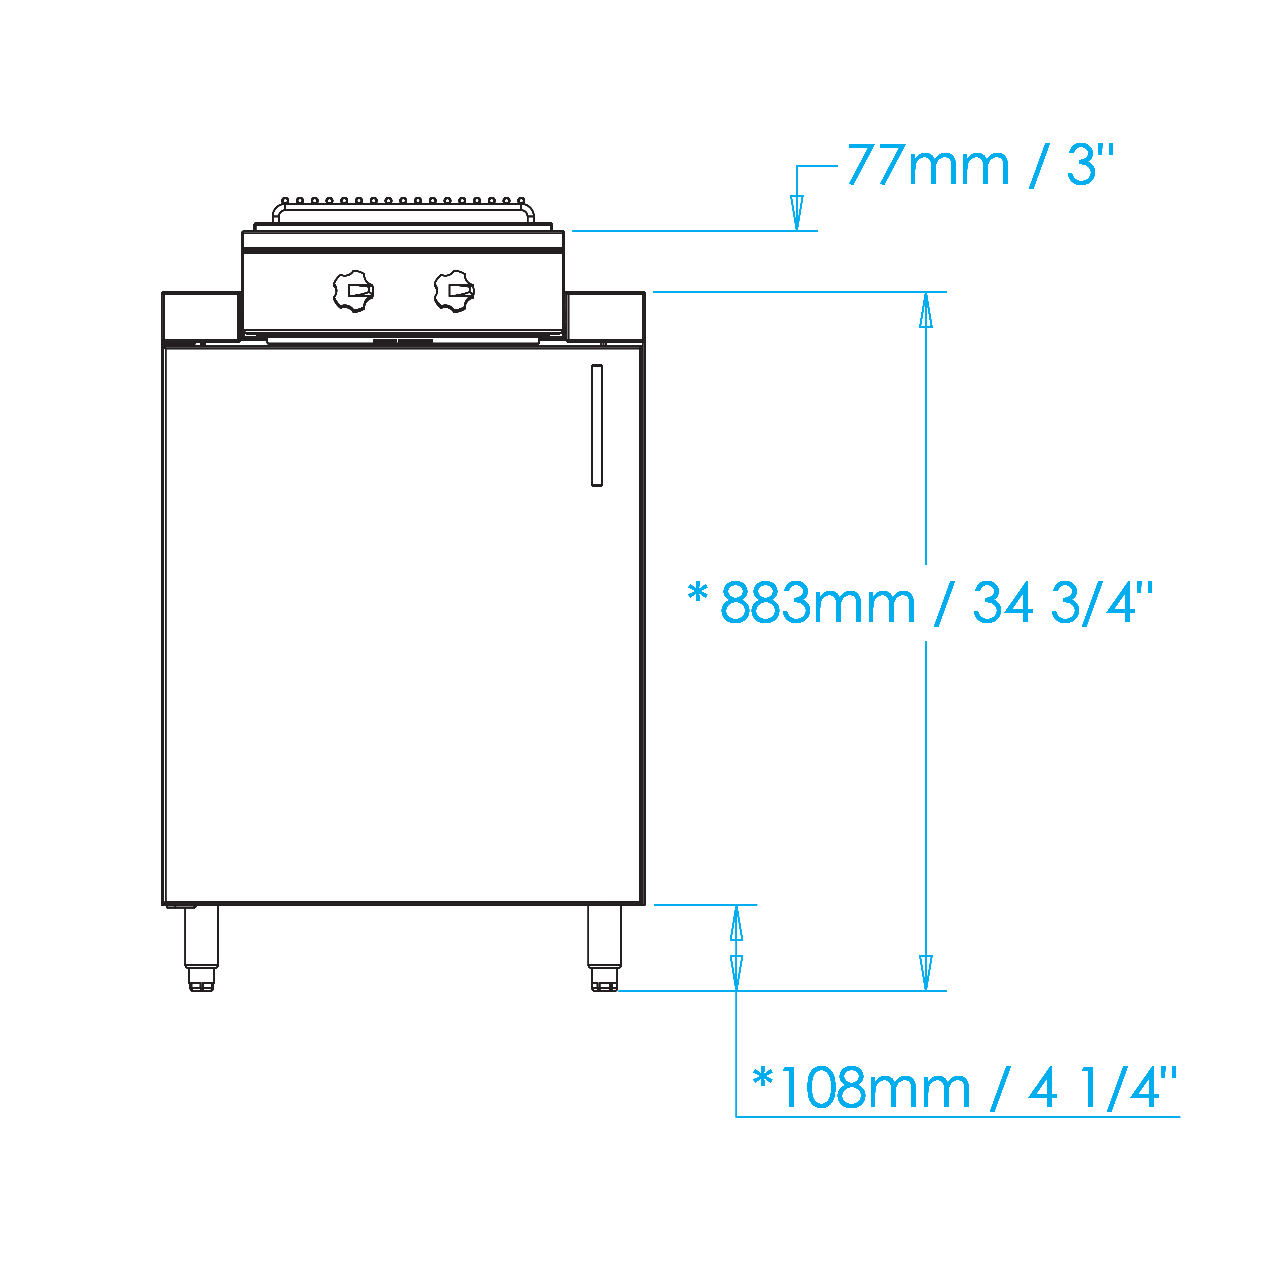 Signature 24-inch Cooktop Cabinet Dimensions Image